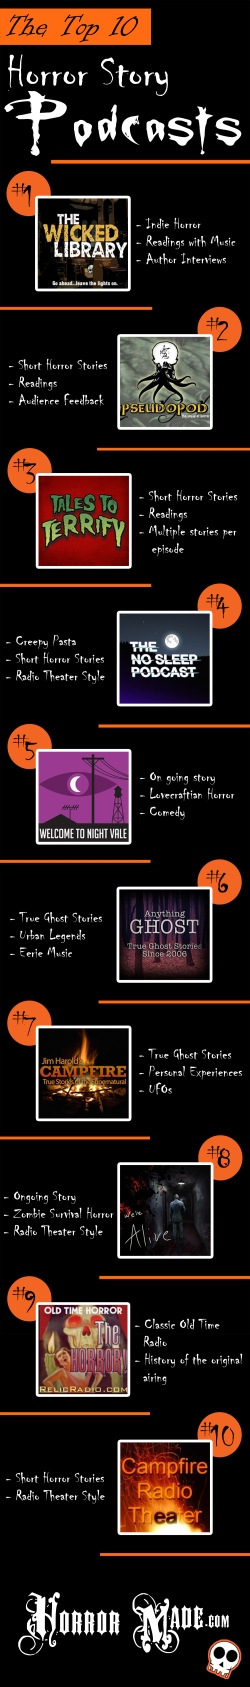 top10horrorstorypodcastsinfographic1